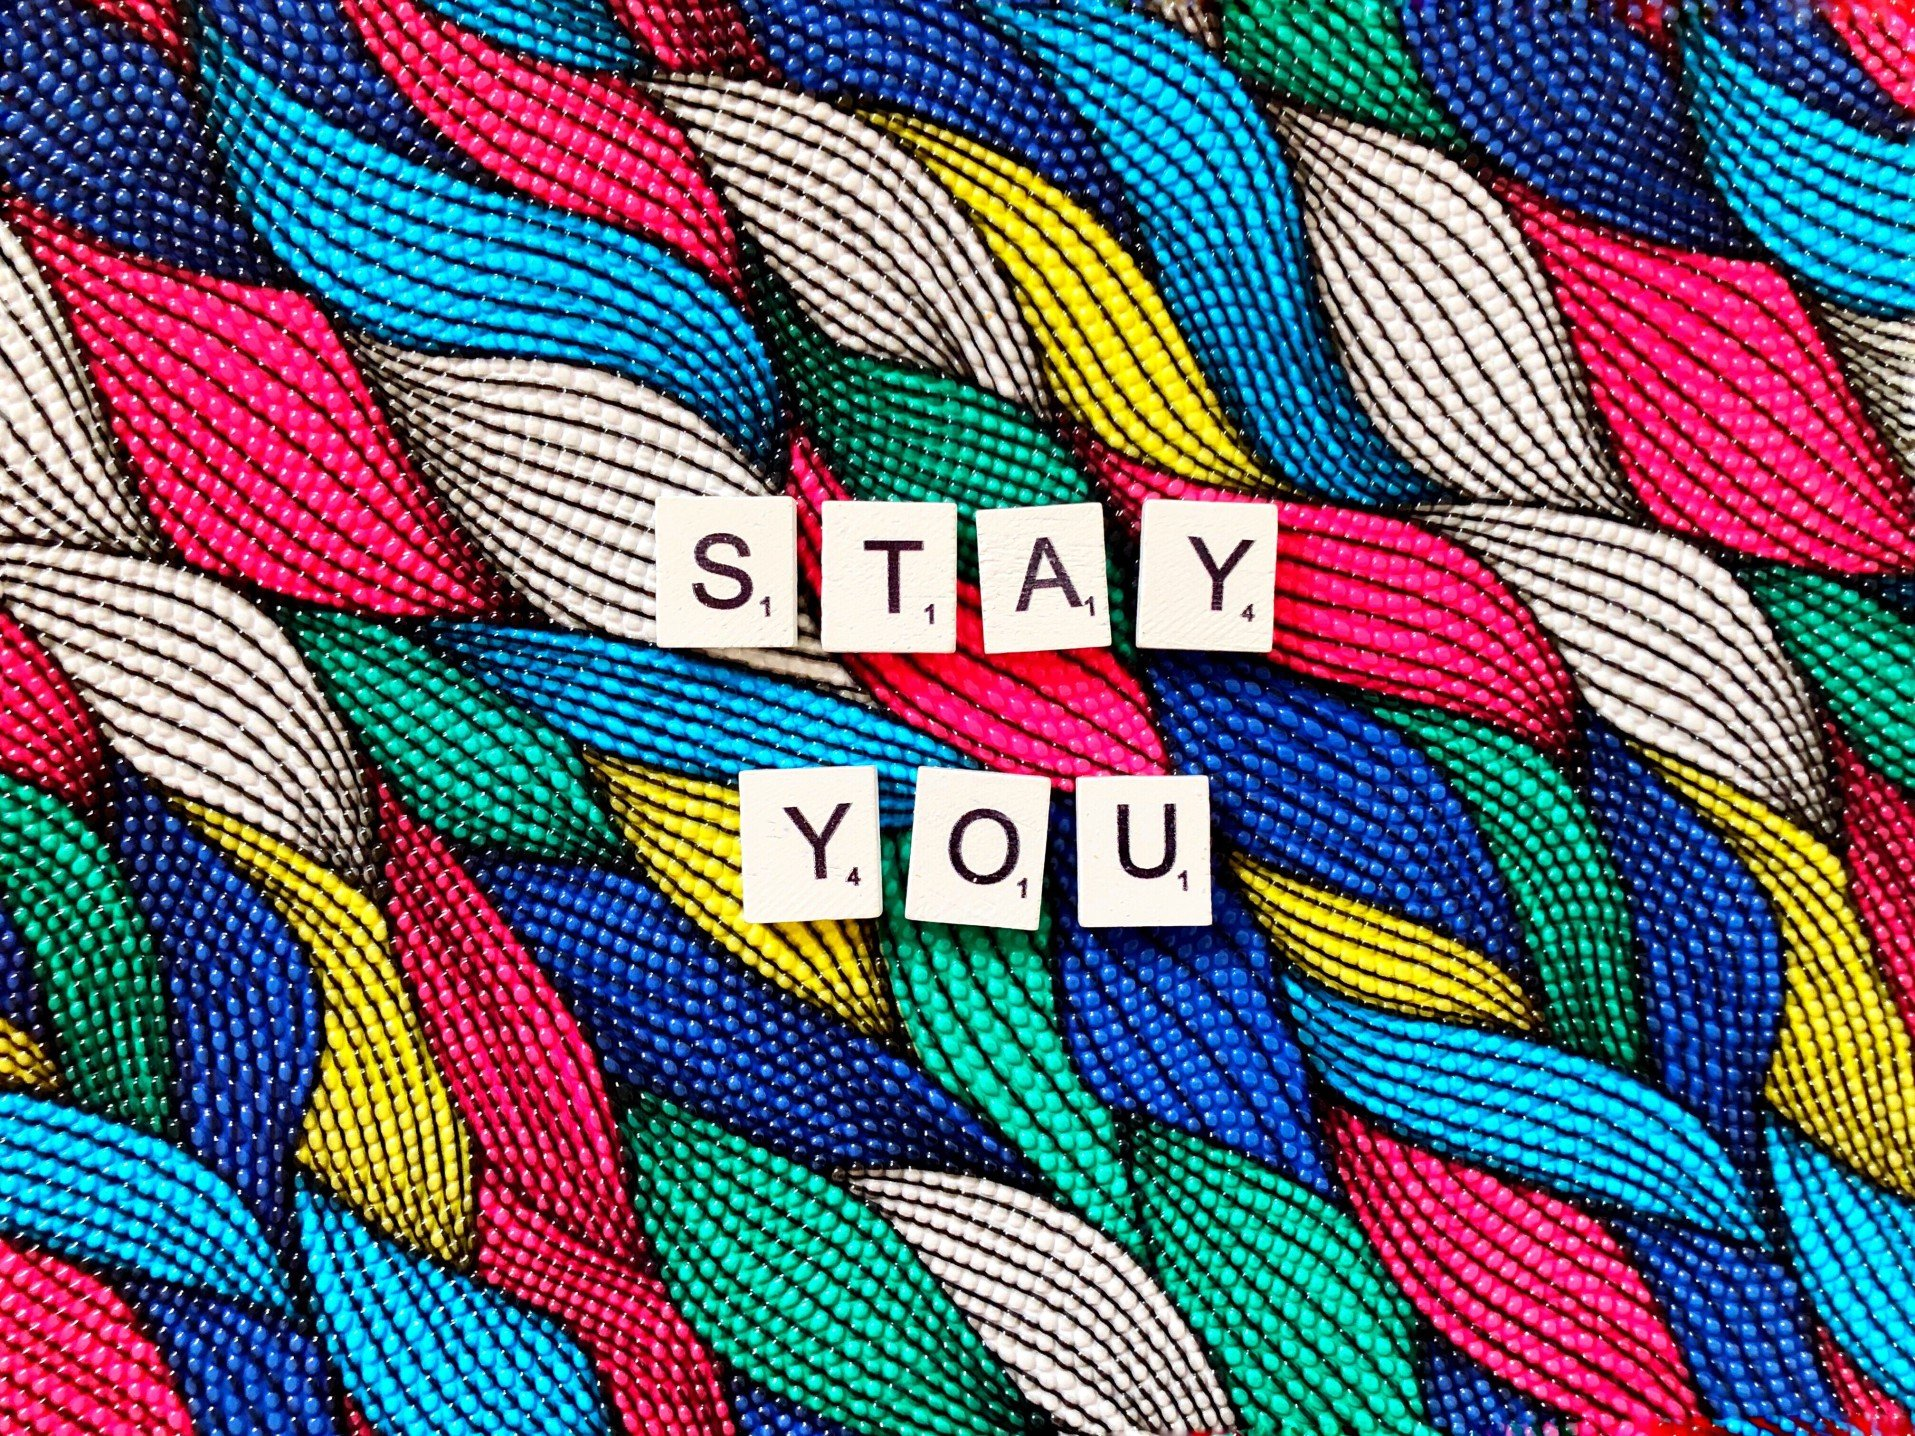 Colorful yarn says Stay You